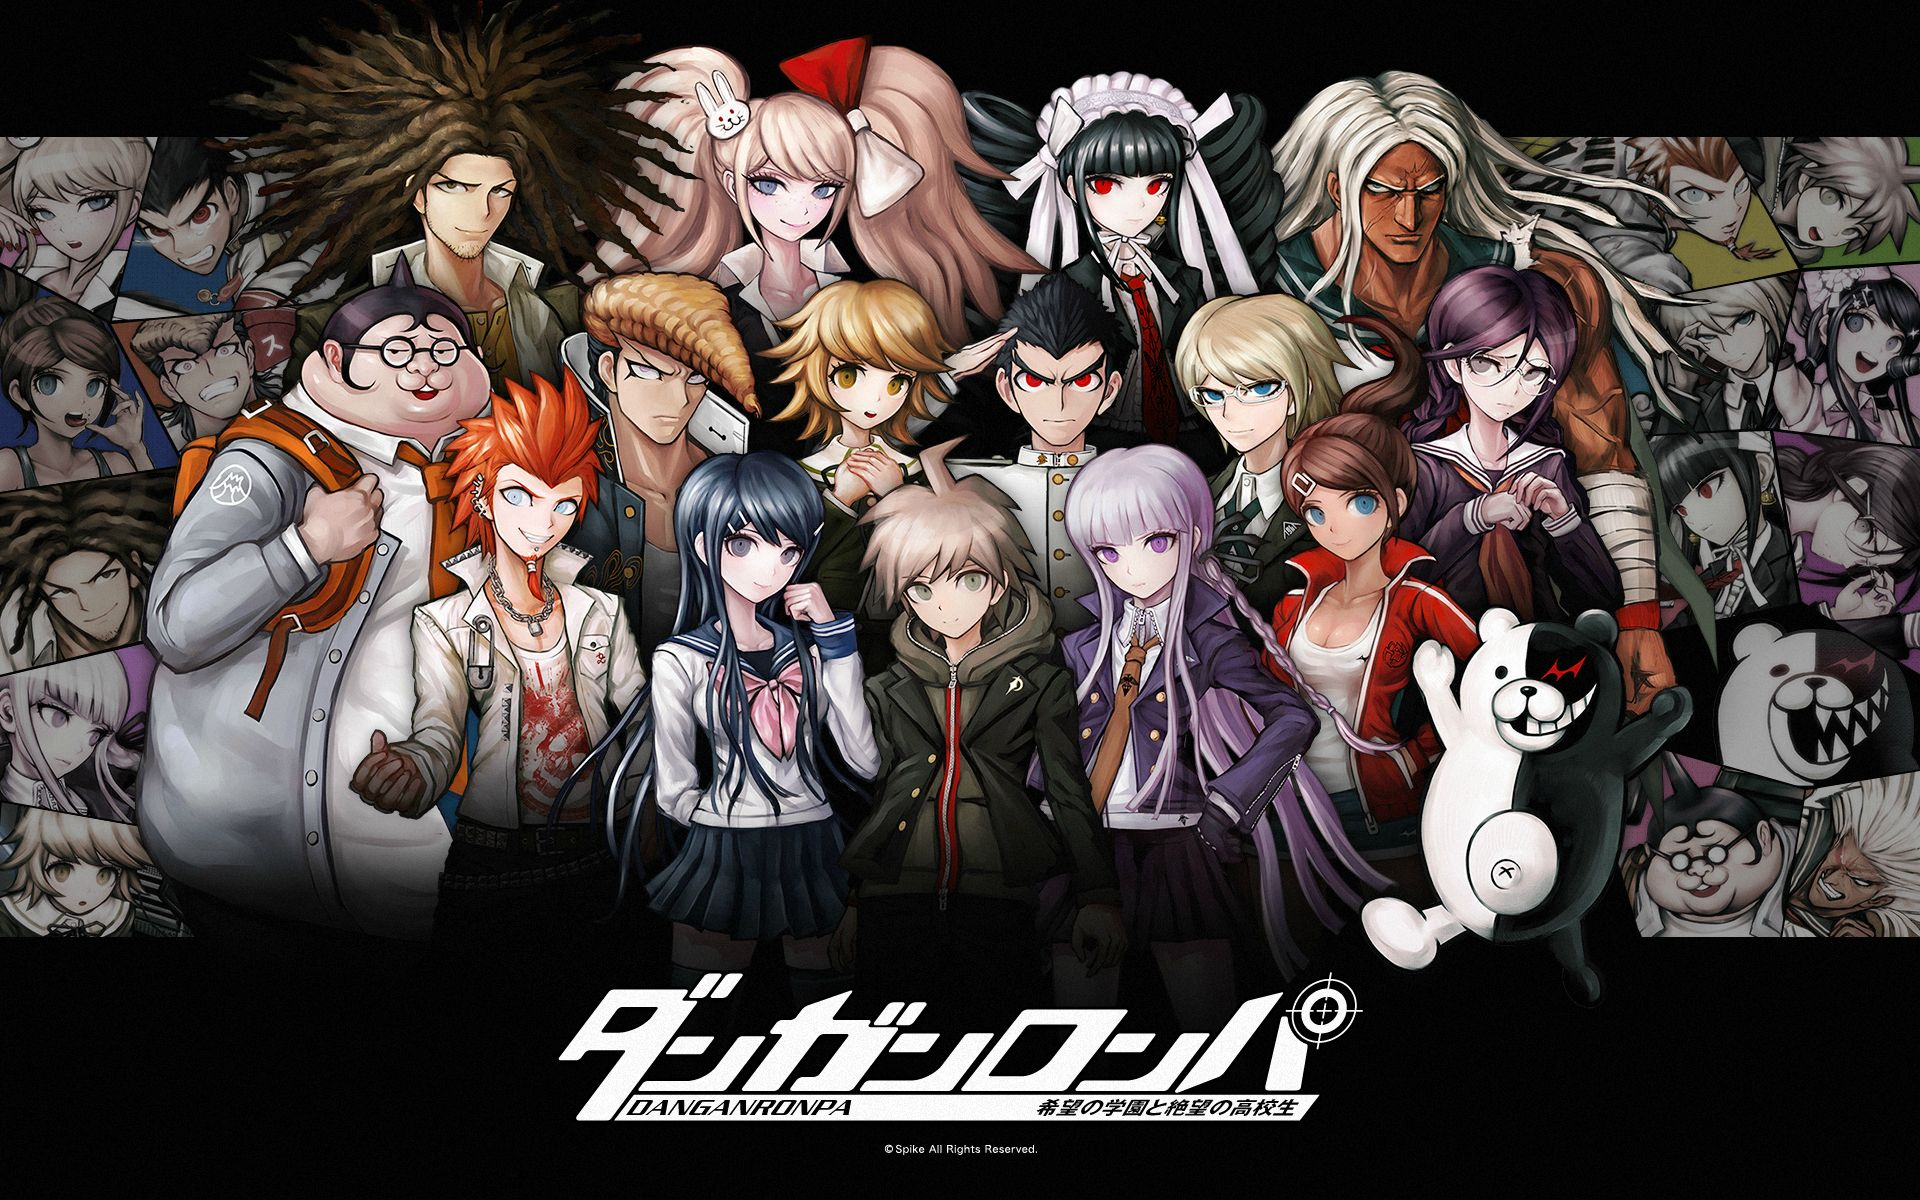 News dangan ronpa coming to na